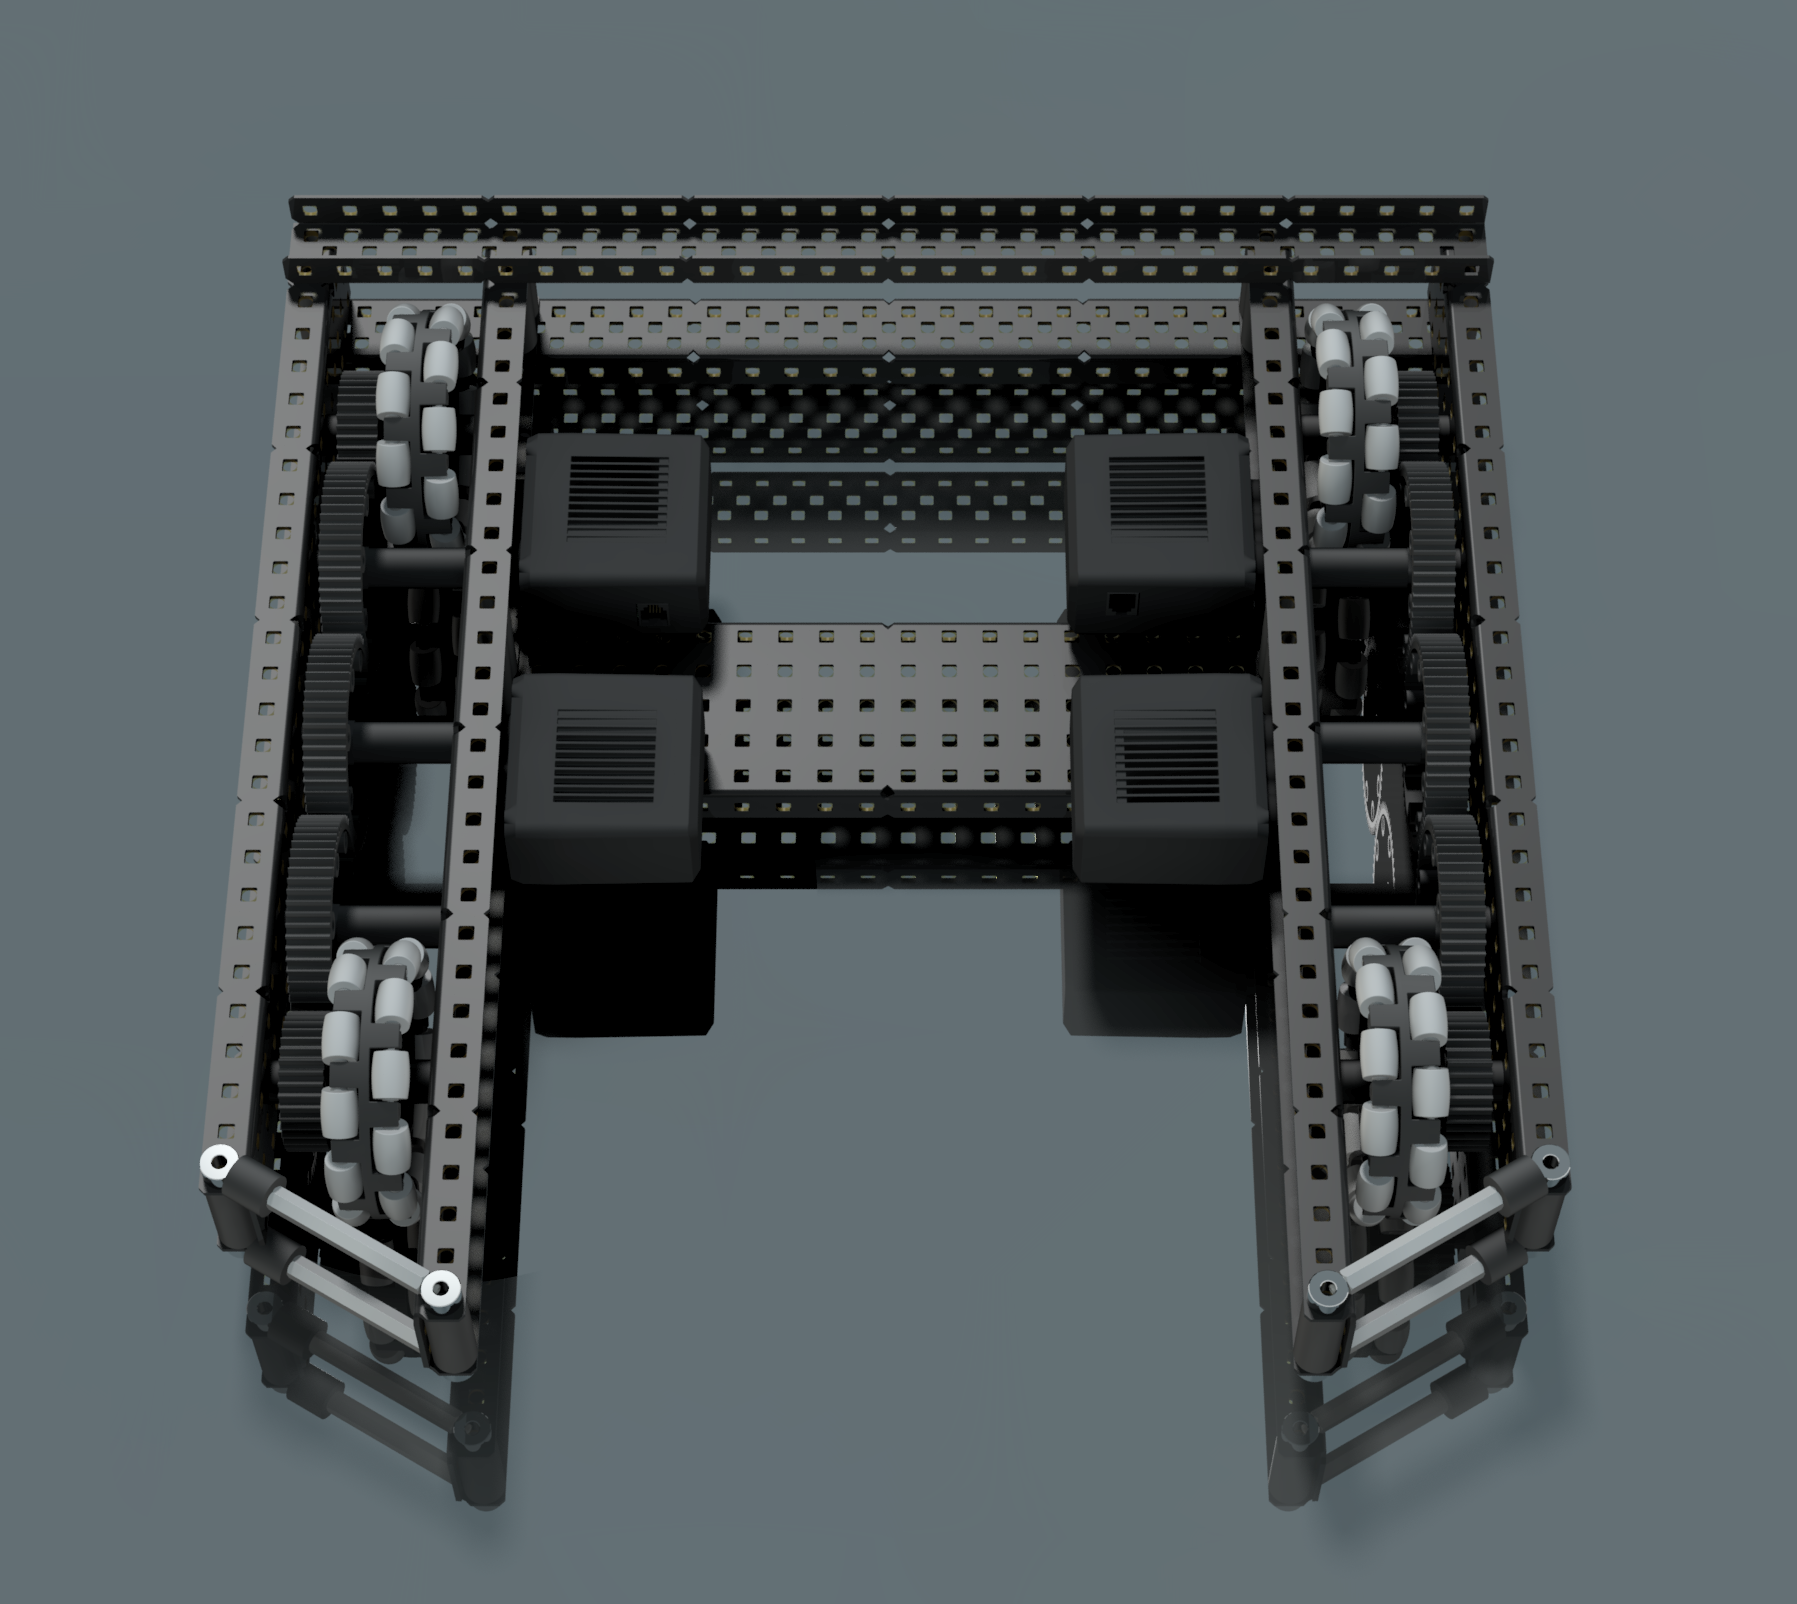 Chassis v3 top down